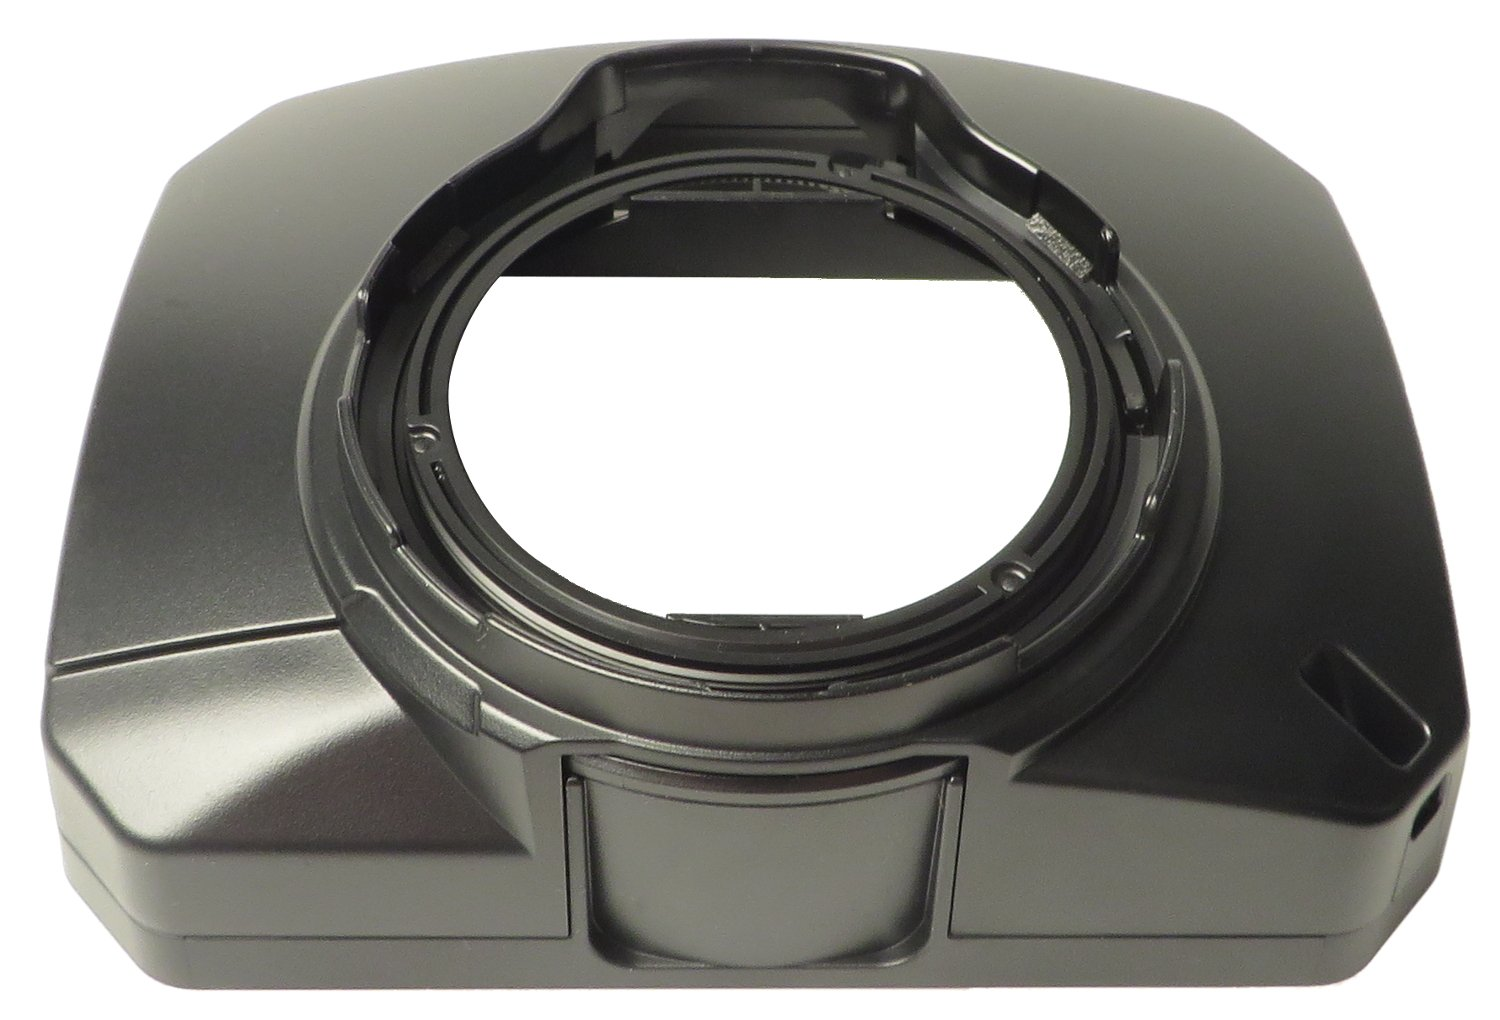 Lens Hood Assembly for HXR-NX30U